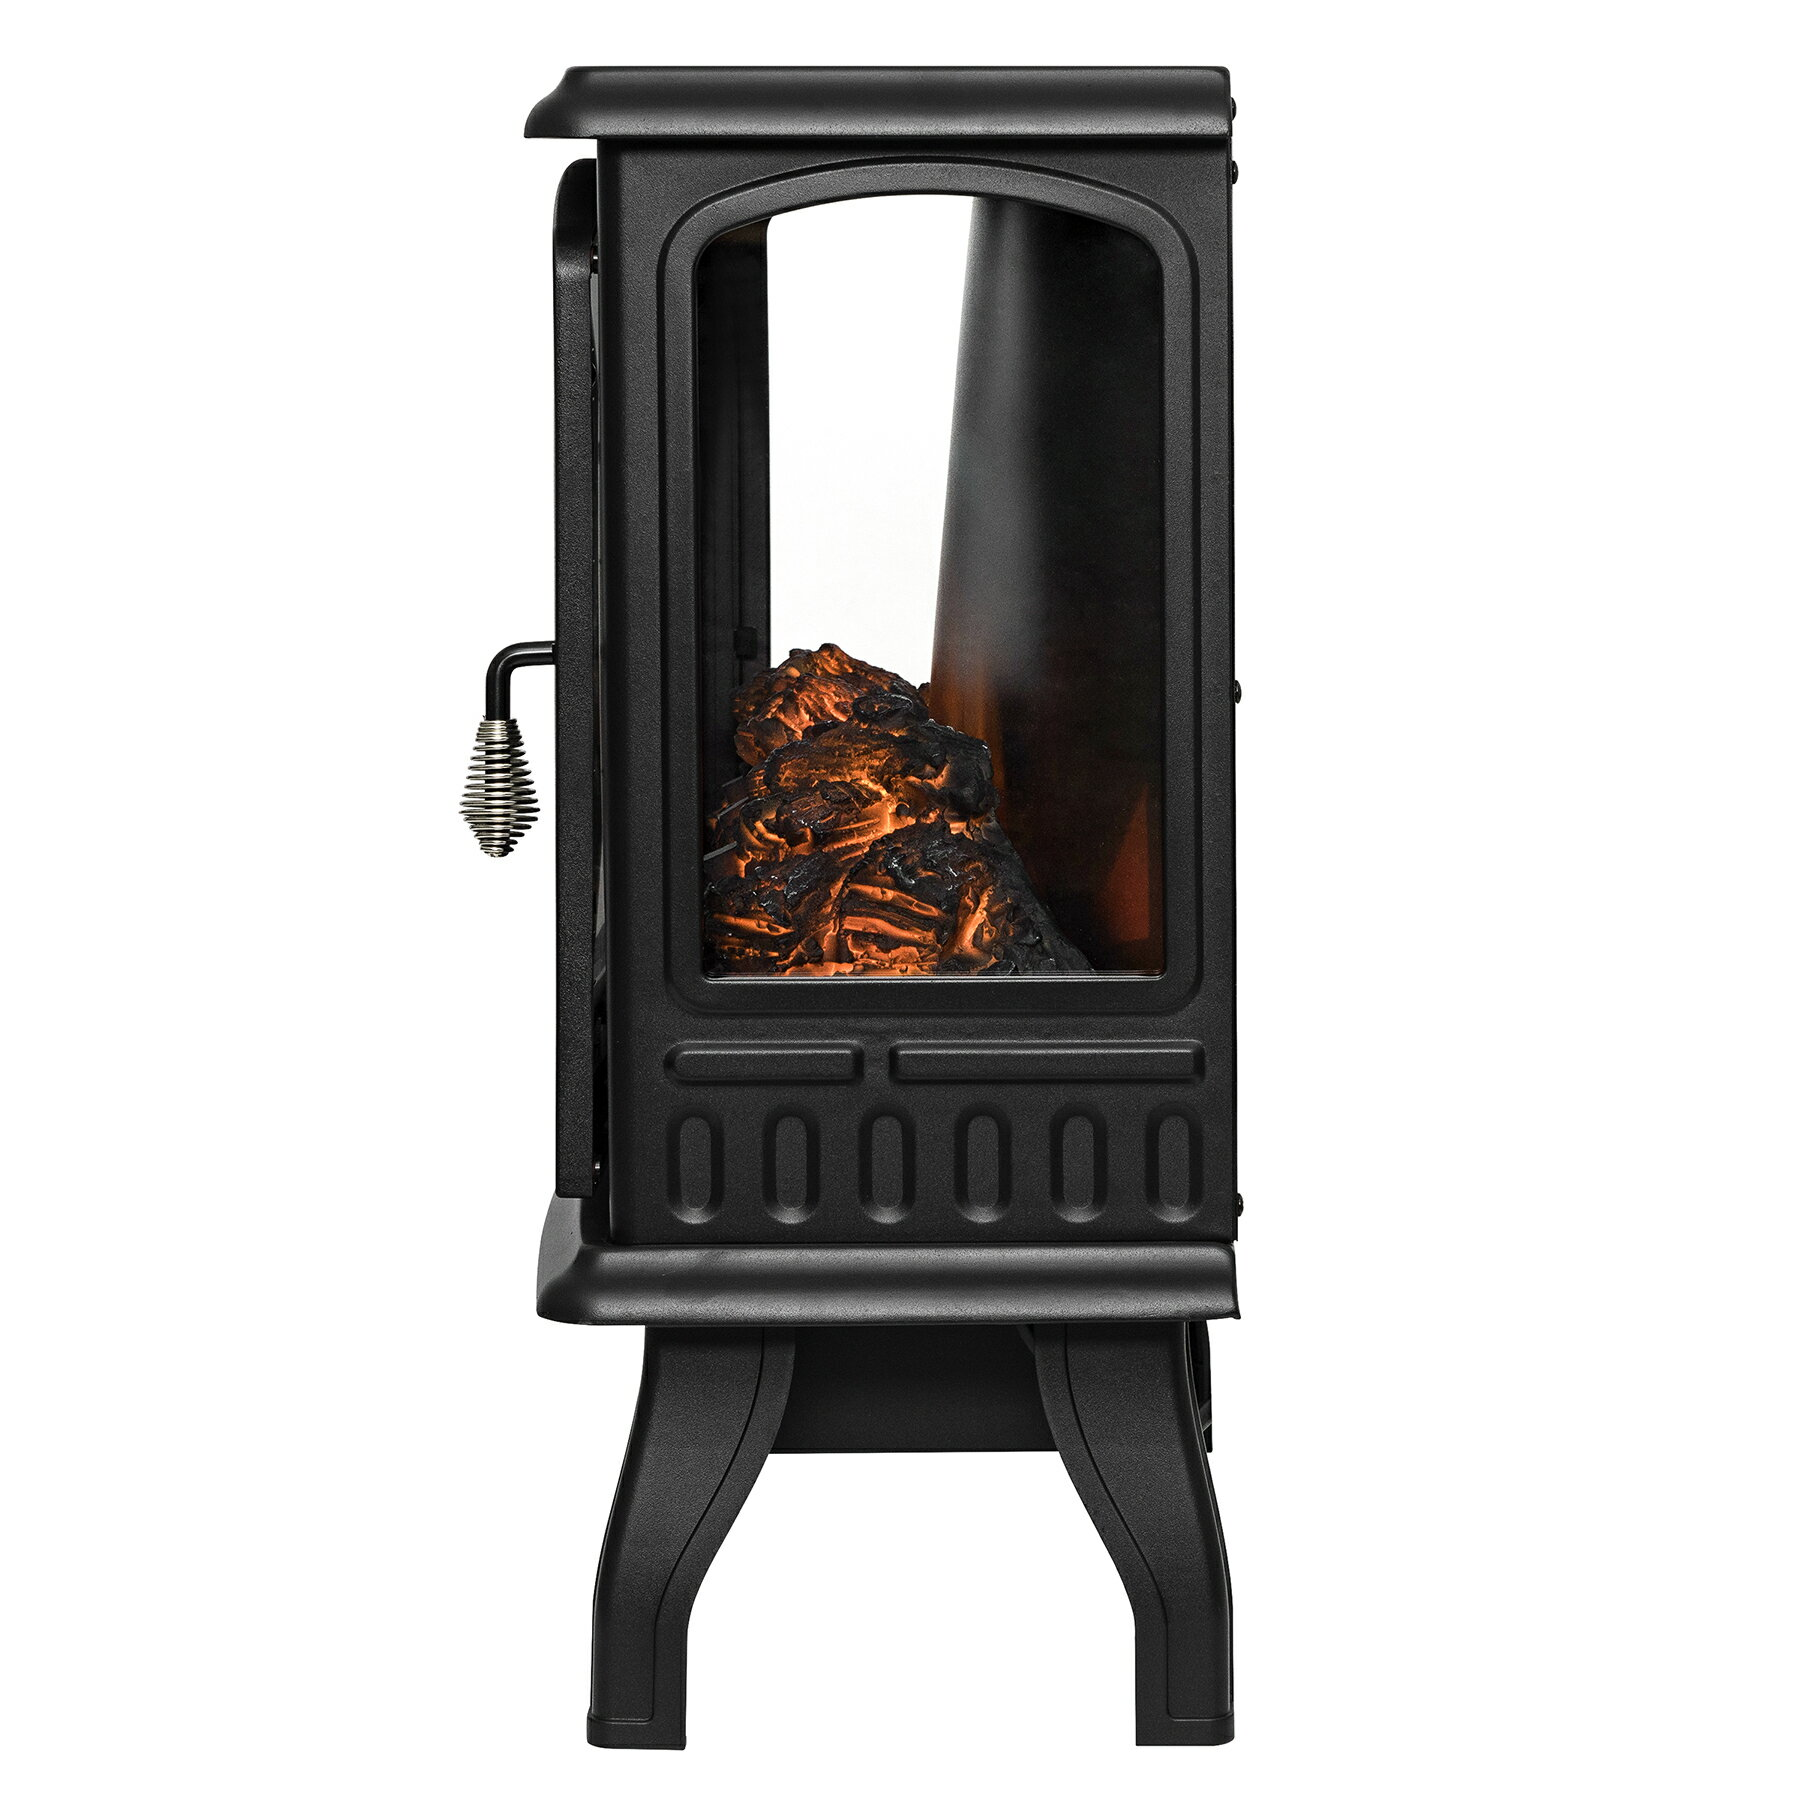 "AKDY 20"" Black Finish Freestanding Electric Fireplace Heater Stove 5"